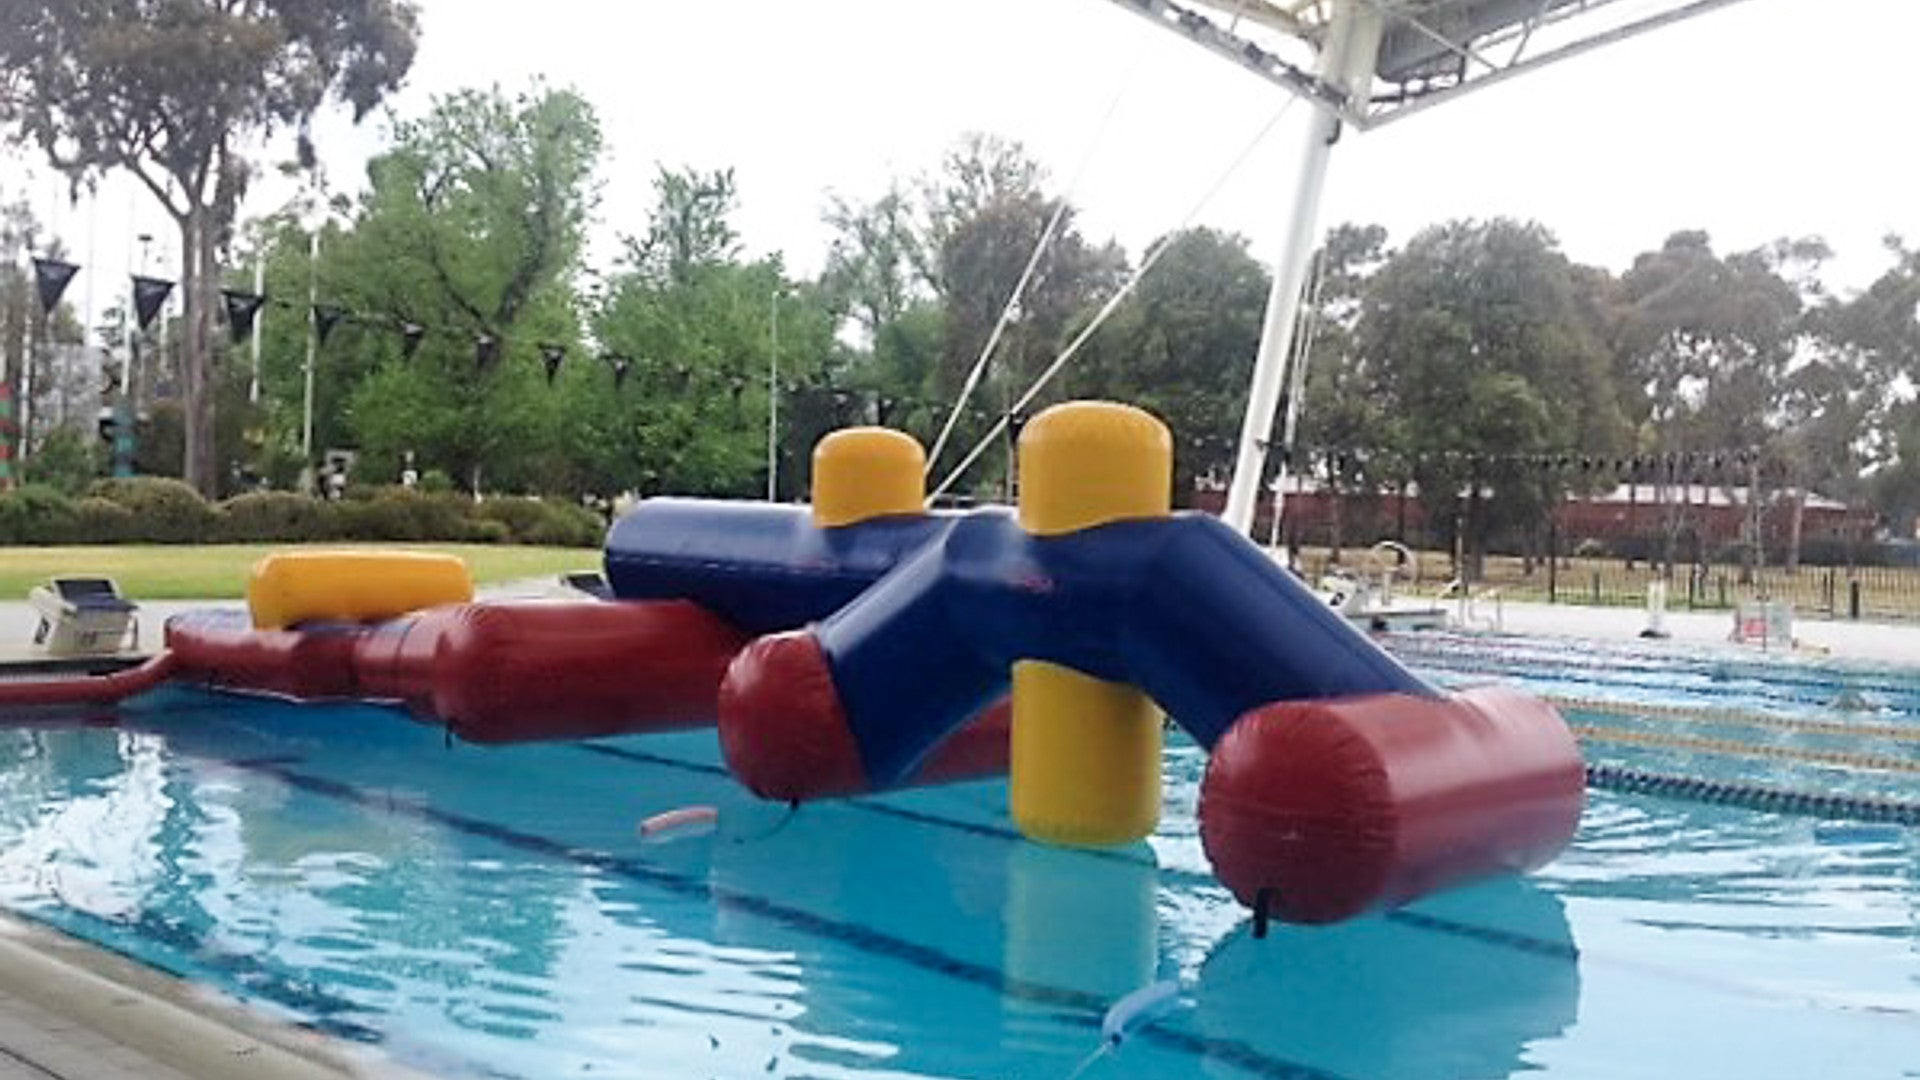 Waterdragons PT - Constant Airflow Obstacle Courses - Aflex Technology